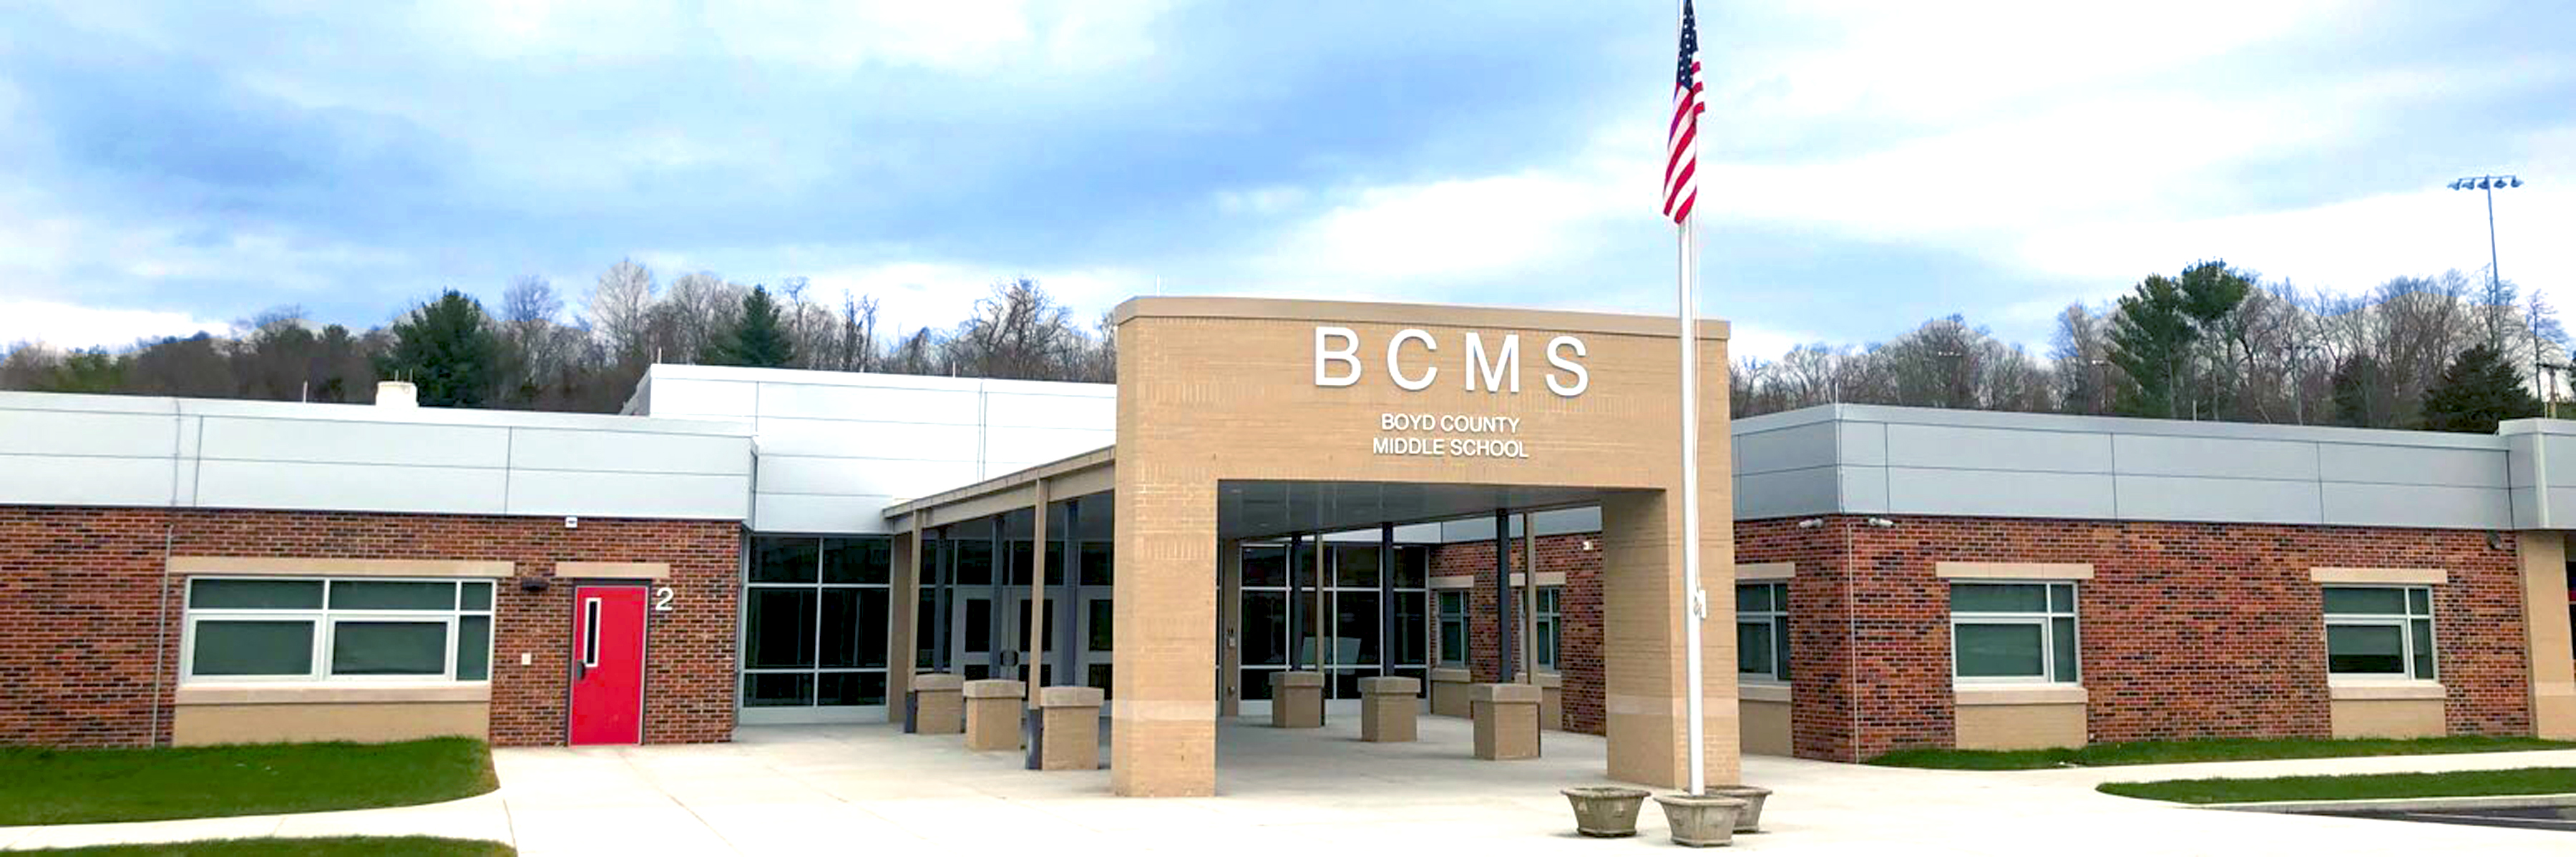 Boyd County Middle School front facade.